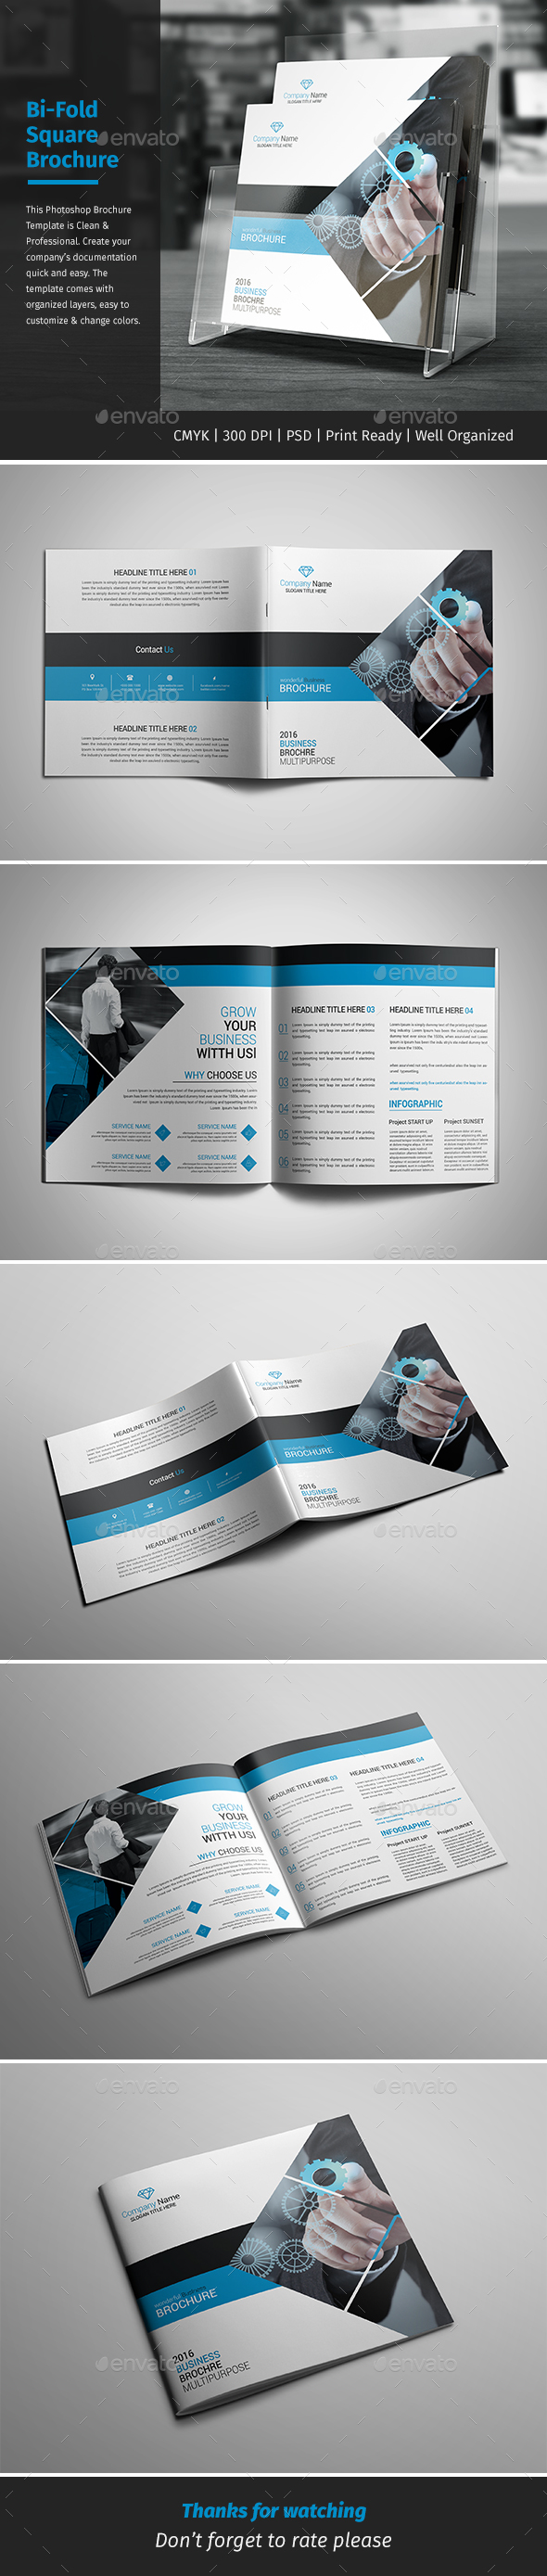 Corporate Bi-fold Square Brochure 02 - Corporate Brochures